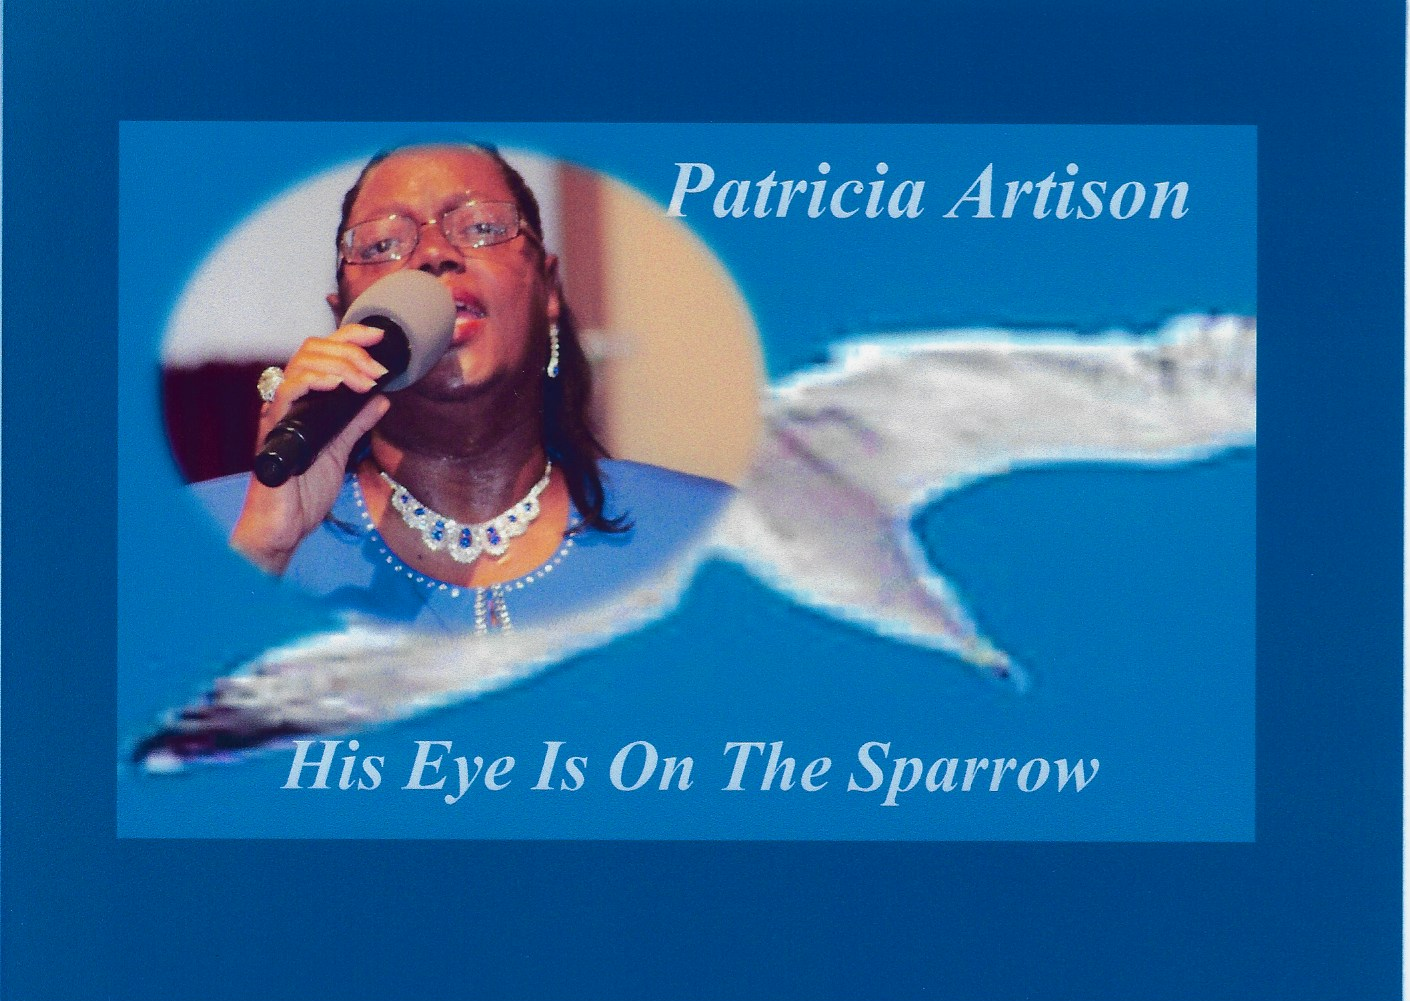 Soulful and Soothing Rhythms and Gospel Lyricism that Inspires: Patricia Artison Unveils New Single